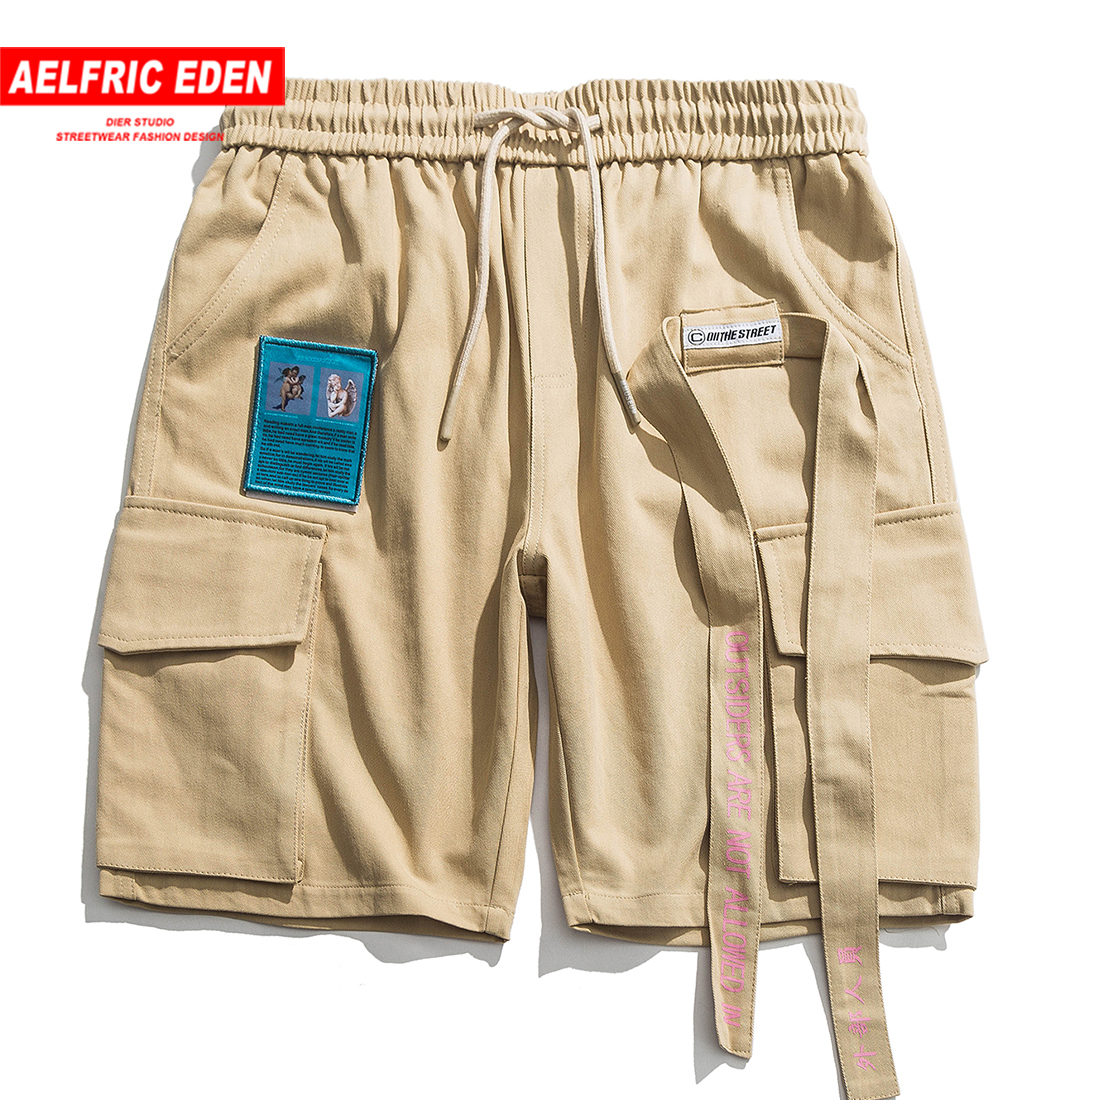 Aelfric Eden Cargo Shorts Men Ribbons Letter Embroidery Hip Hop Knee Length Fashion Summer Streetwear 2019 Casual Short Joggers